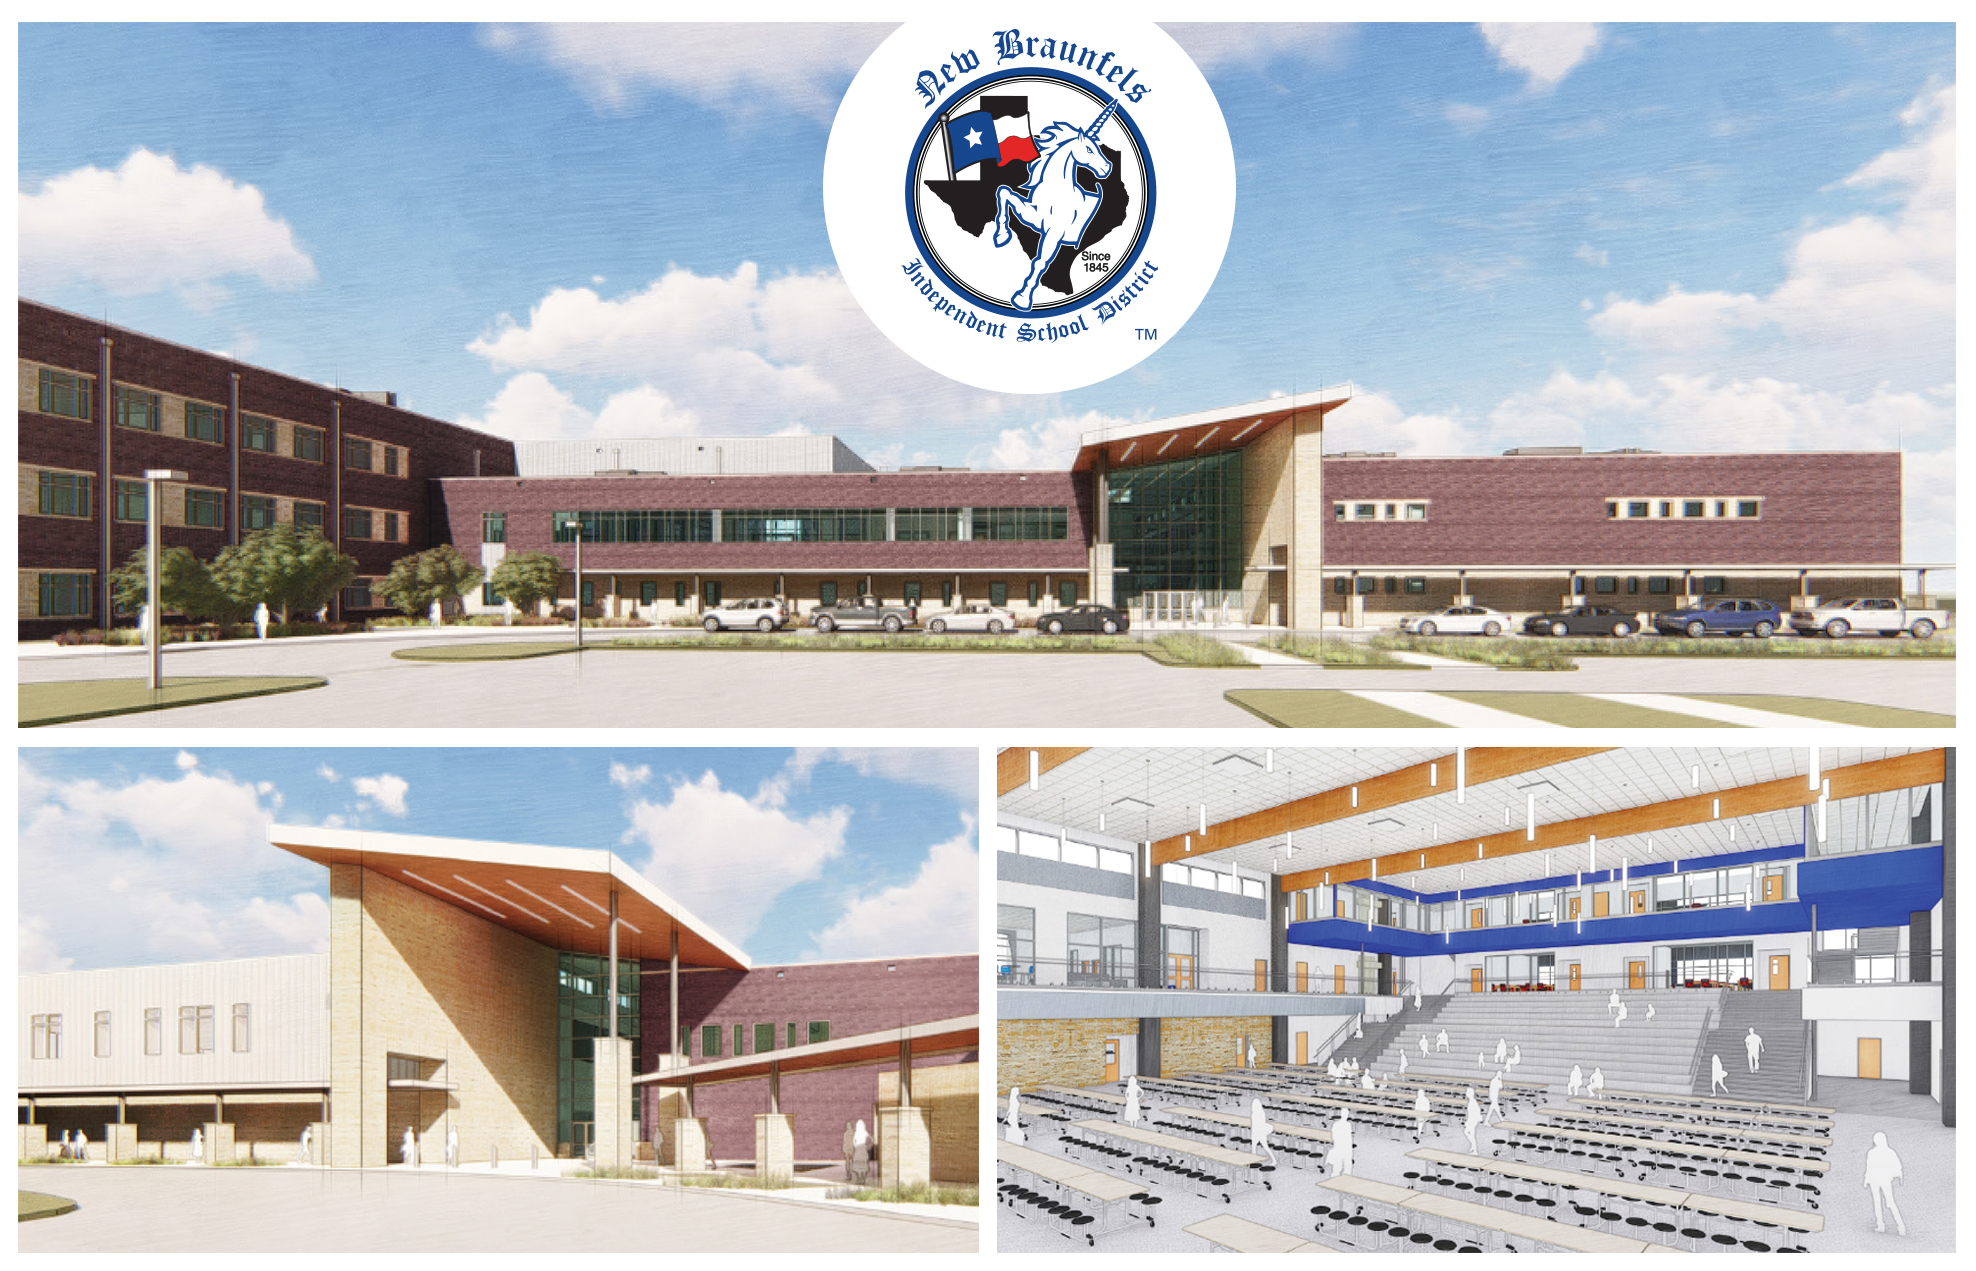 New Middle School architectural renderings for groundbreaking ceremony invitation